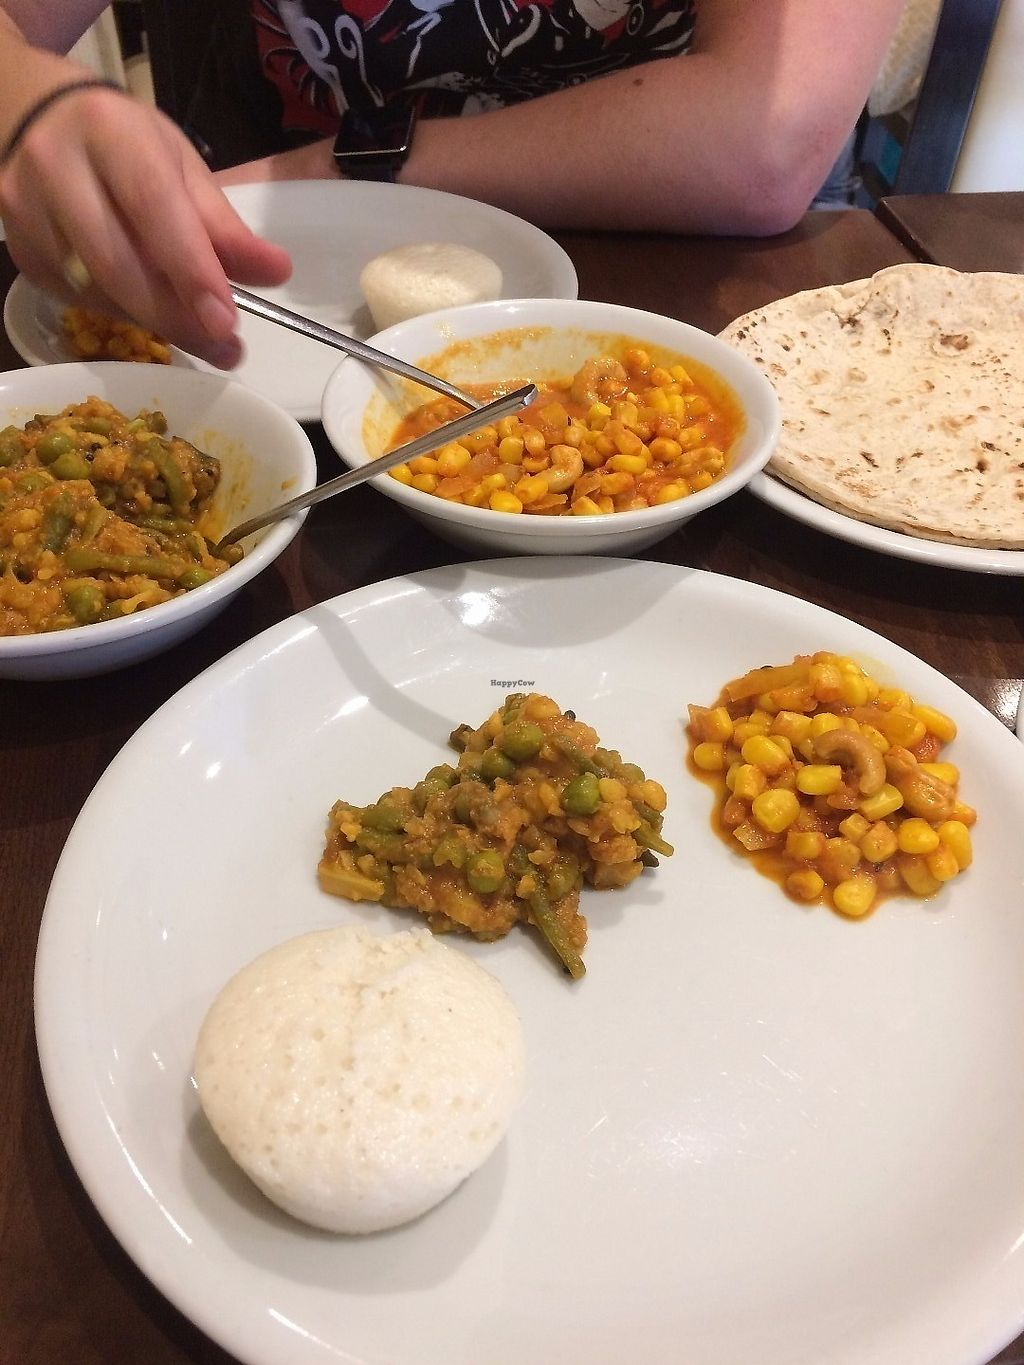 """Photo of Jyoti's Vegetarian  by <a href=""""/members/profile/Hoggy"""">Hoggy</a> <br/>Left Curry - Mixed vegetable daal Right Curry - Sweetcorn and cashew With roti and idli <br/> June 19, 2017  - <a href='/contact/abuse/image/637/271158'>Report</a>"""